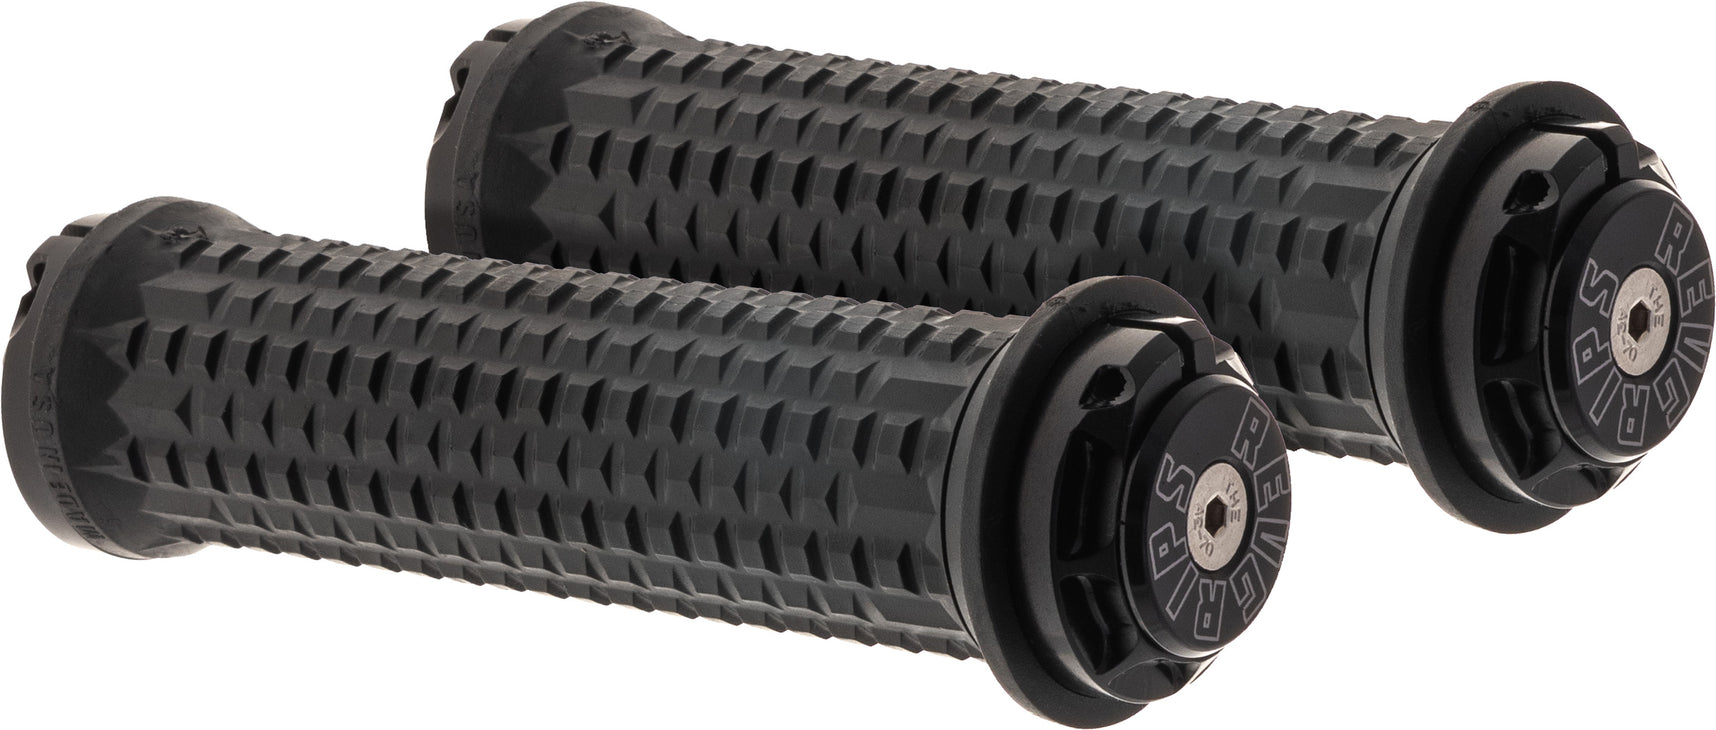 Pro Series Small (31mm) Grip System